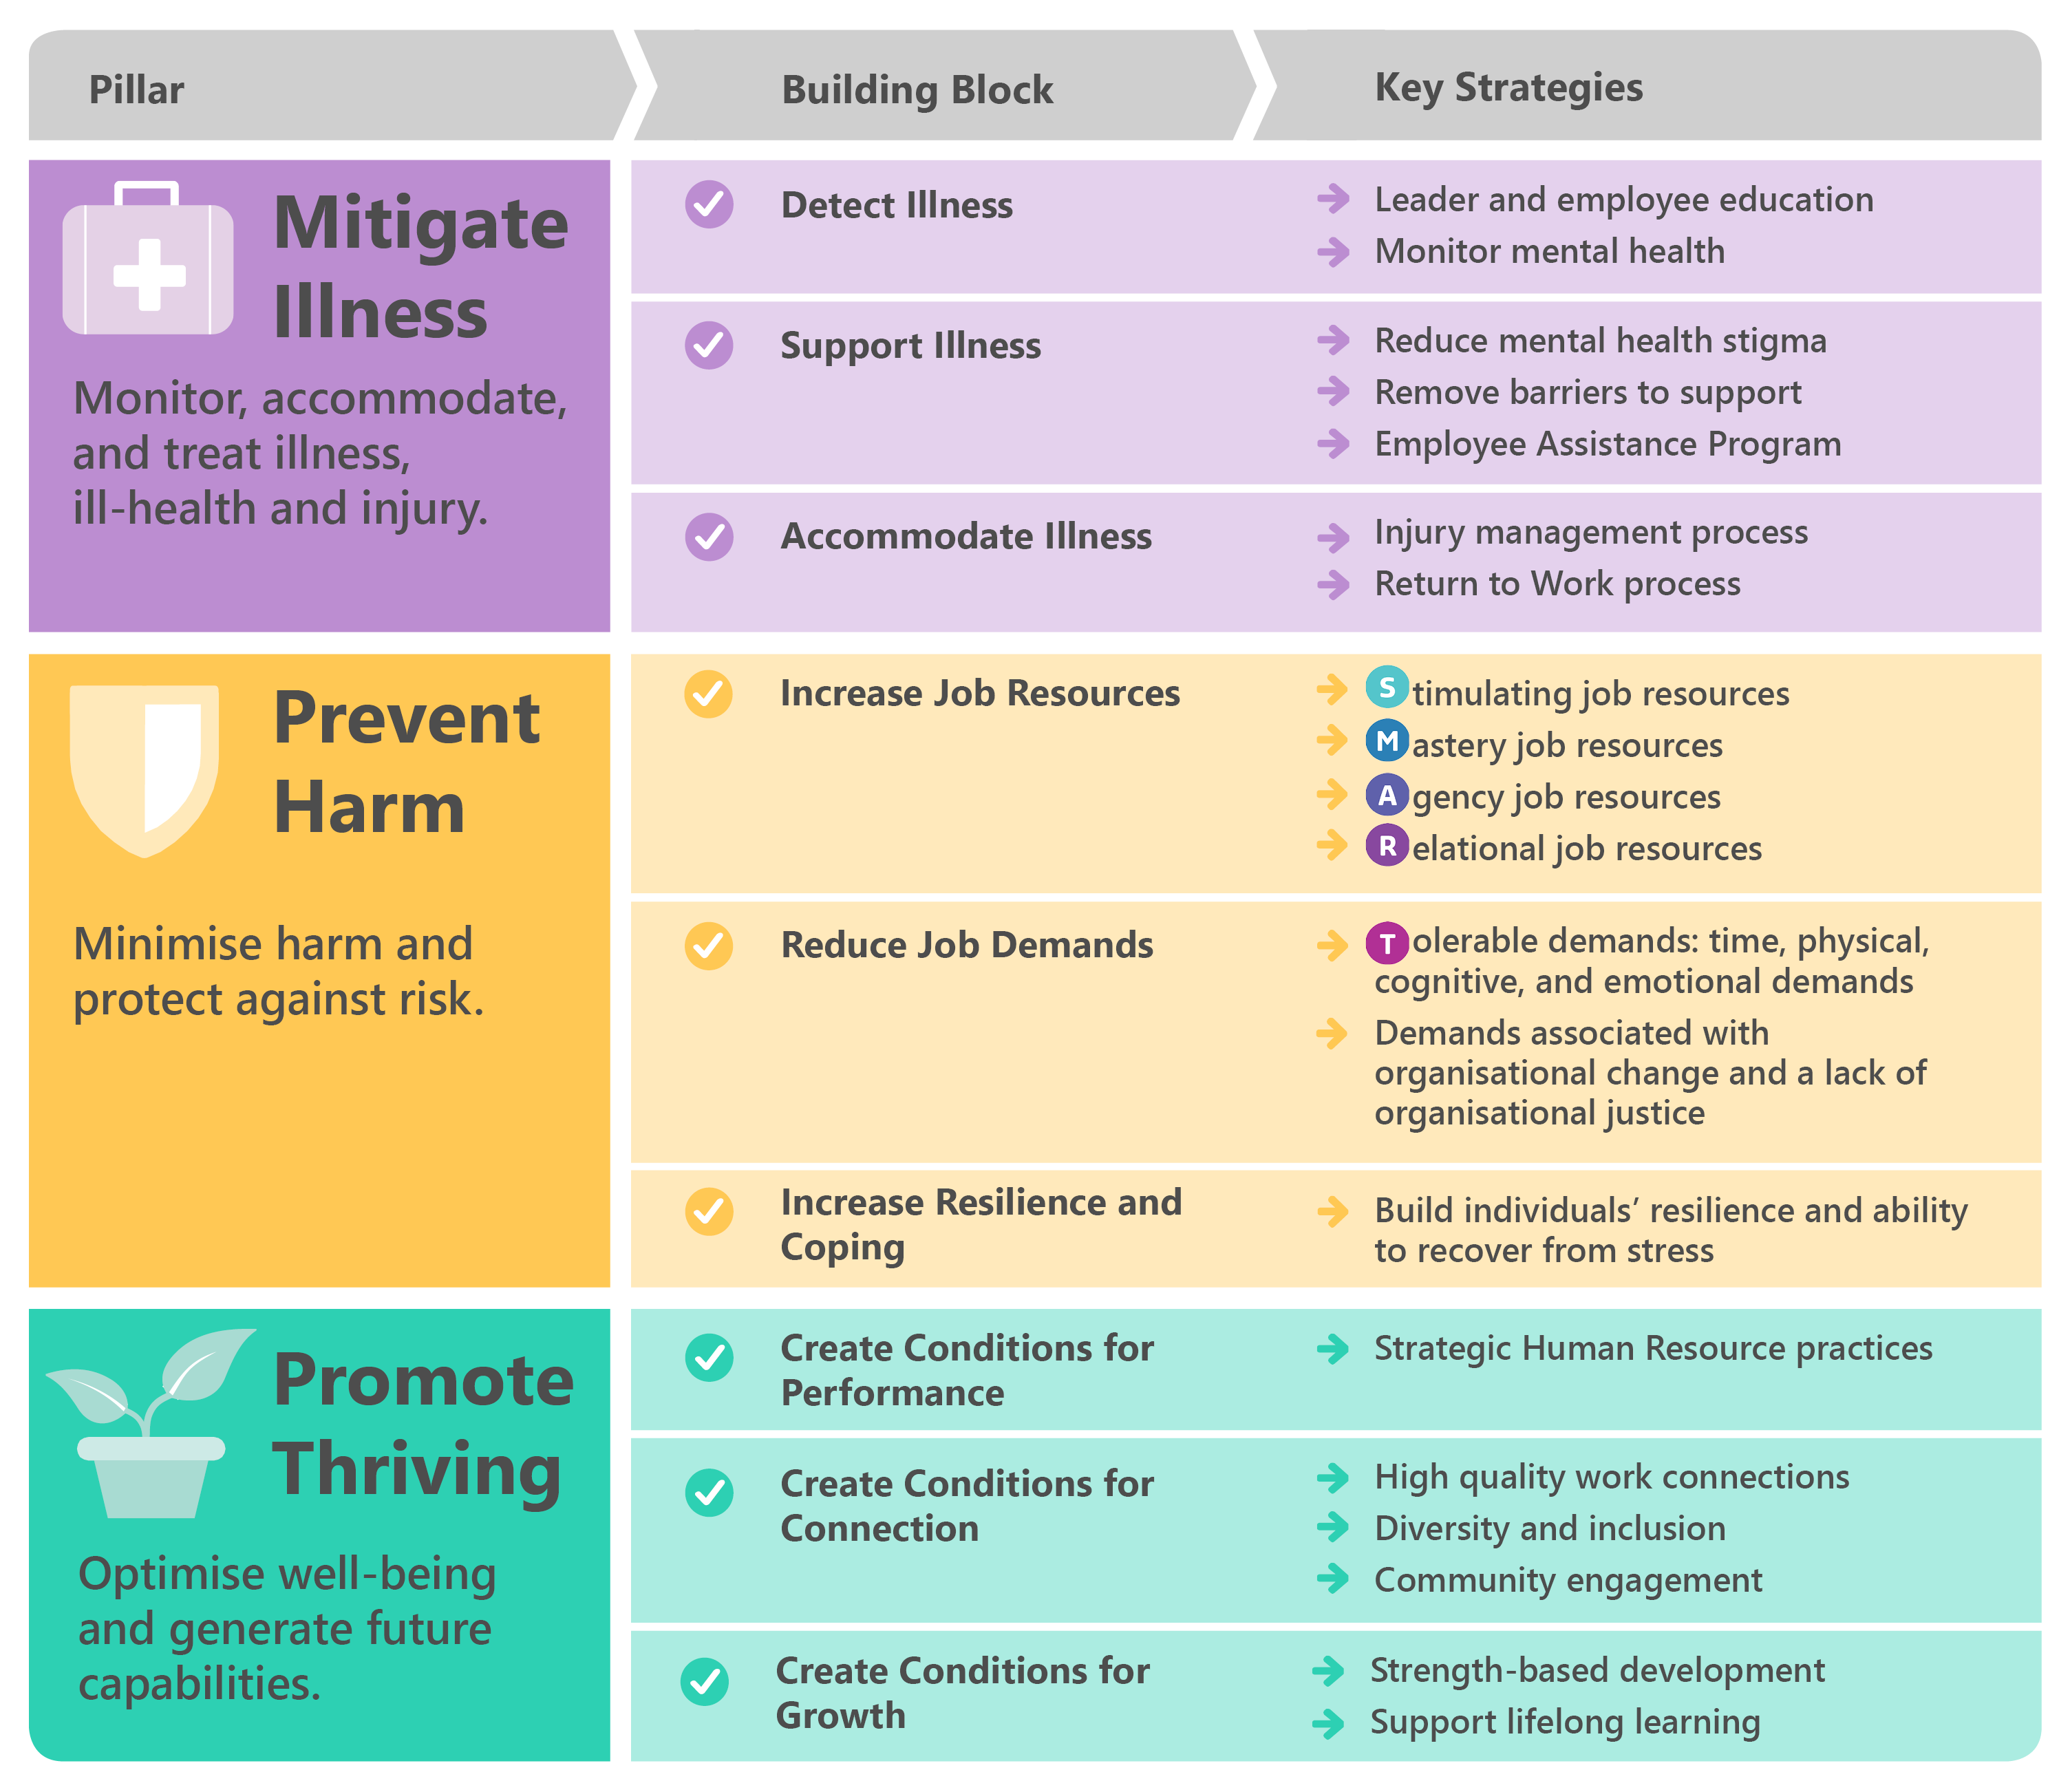 Thrive Framework table showing the three pillars of Mitigate illness, prevent harm and promote thriving and their respective building blocks and key strategies